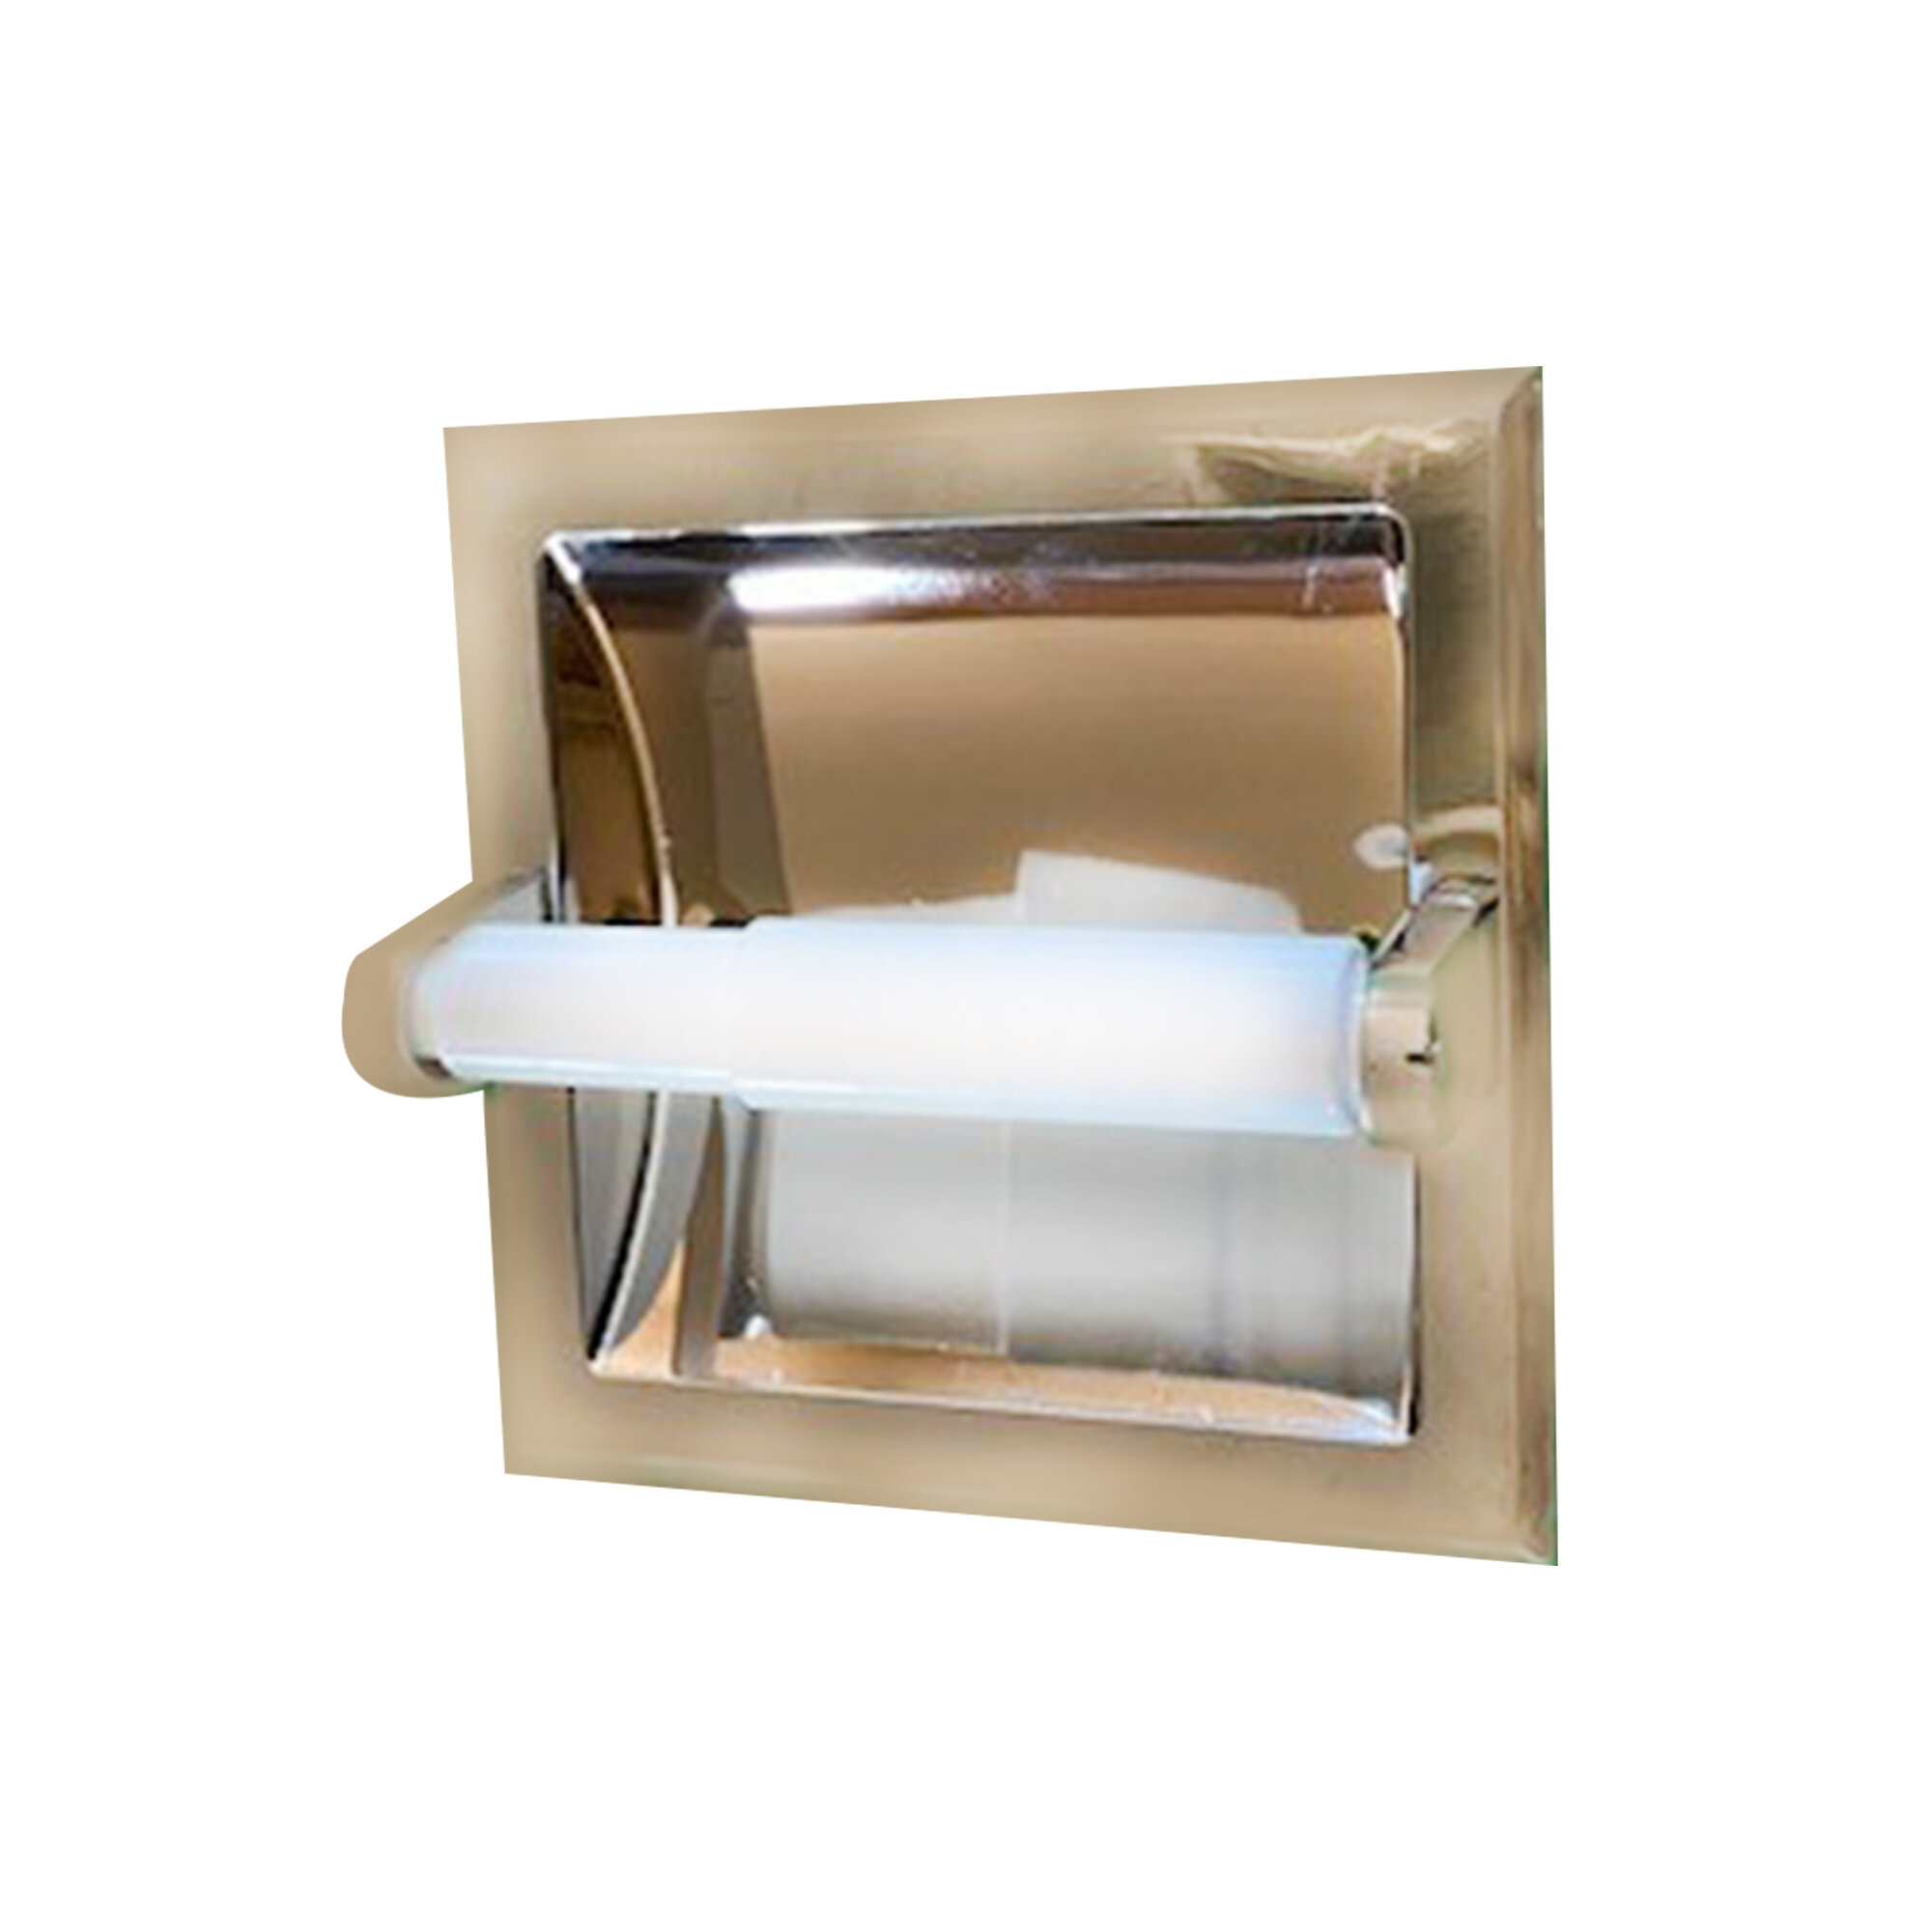 Aa Warehousing Standard Recessed Toilet Paper Holder Wayfair